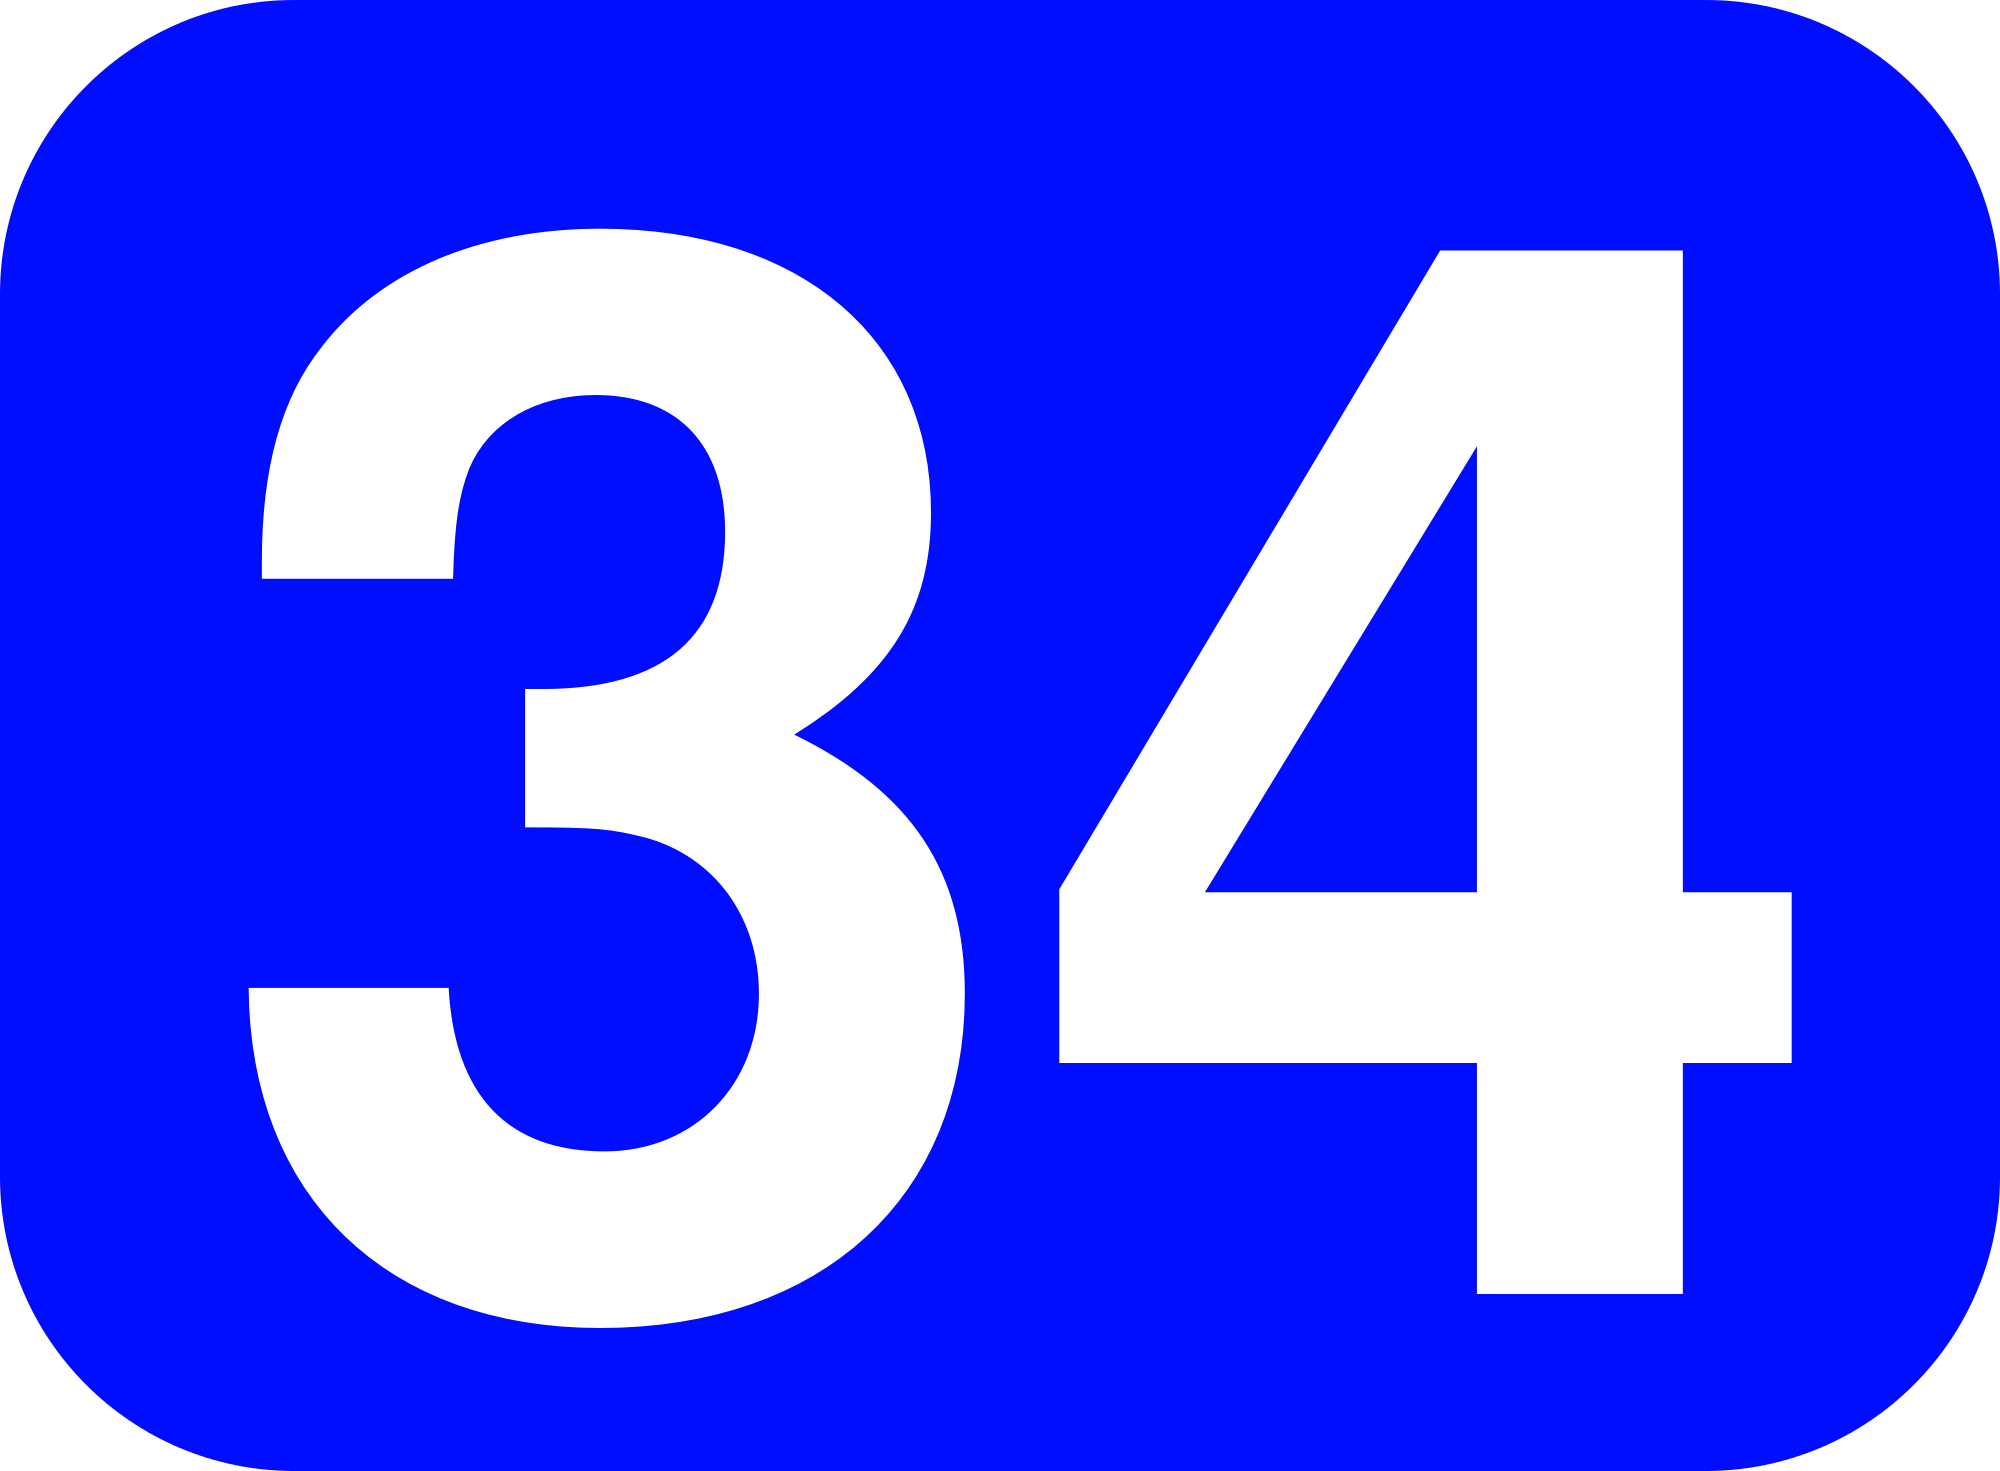 File:34 white, blue rounded rectangle.png